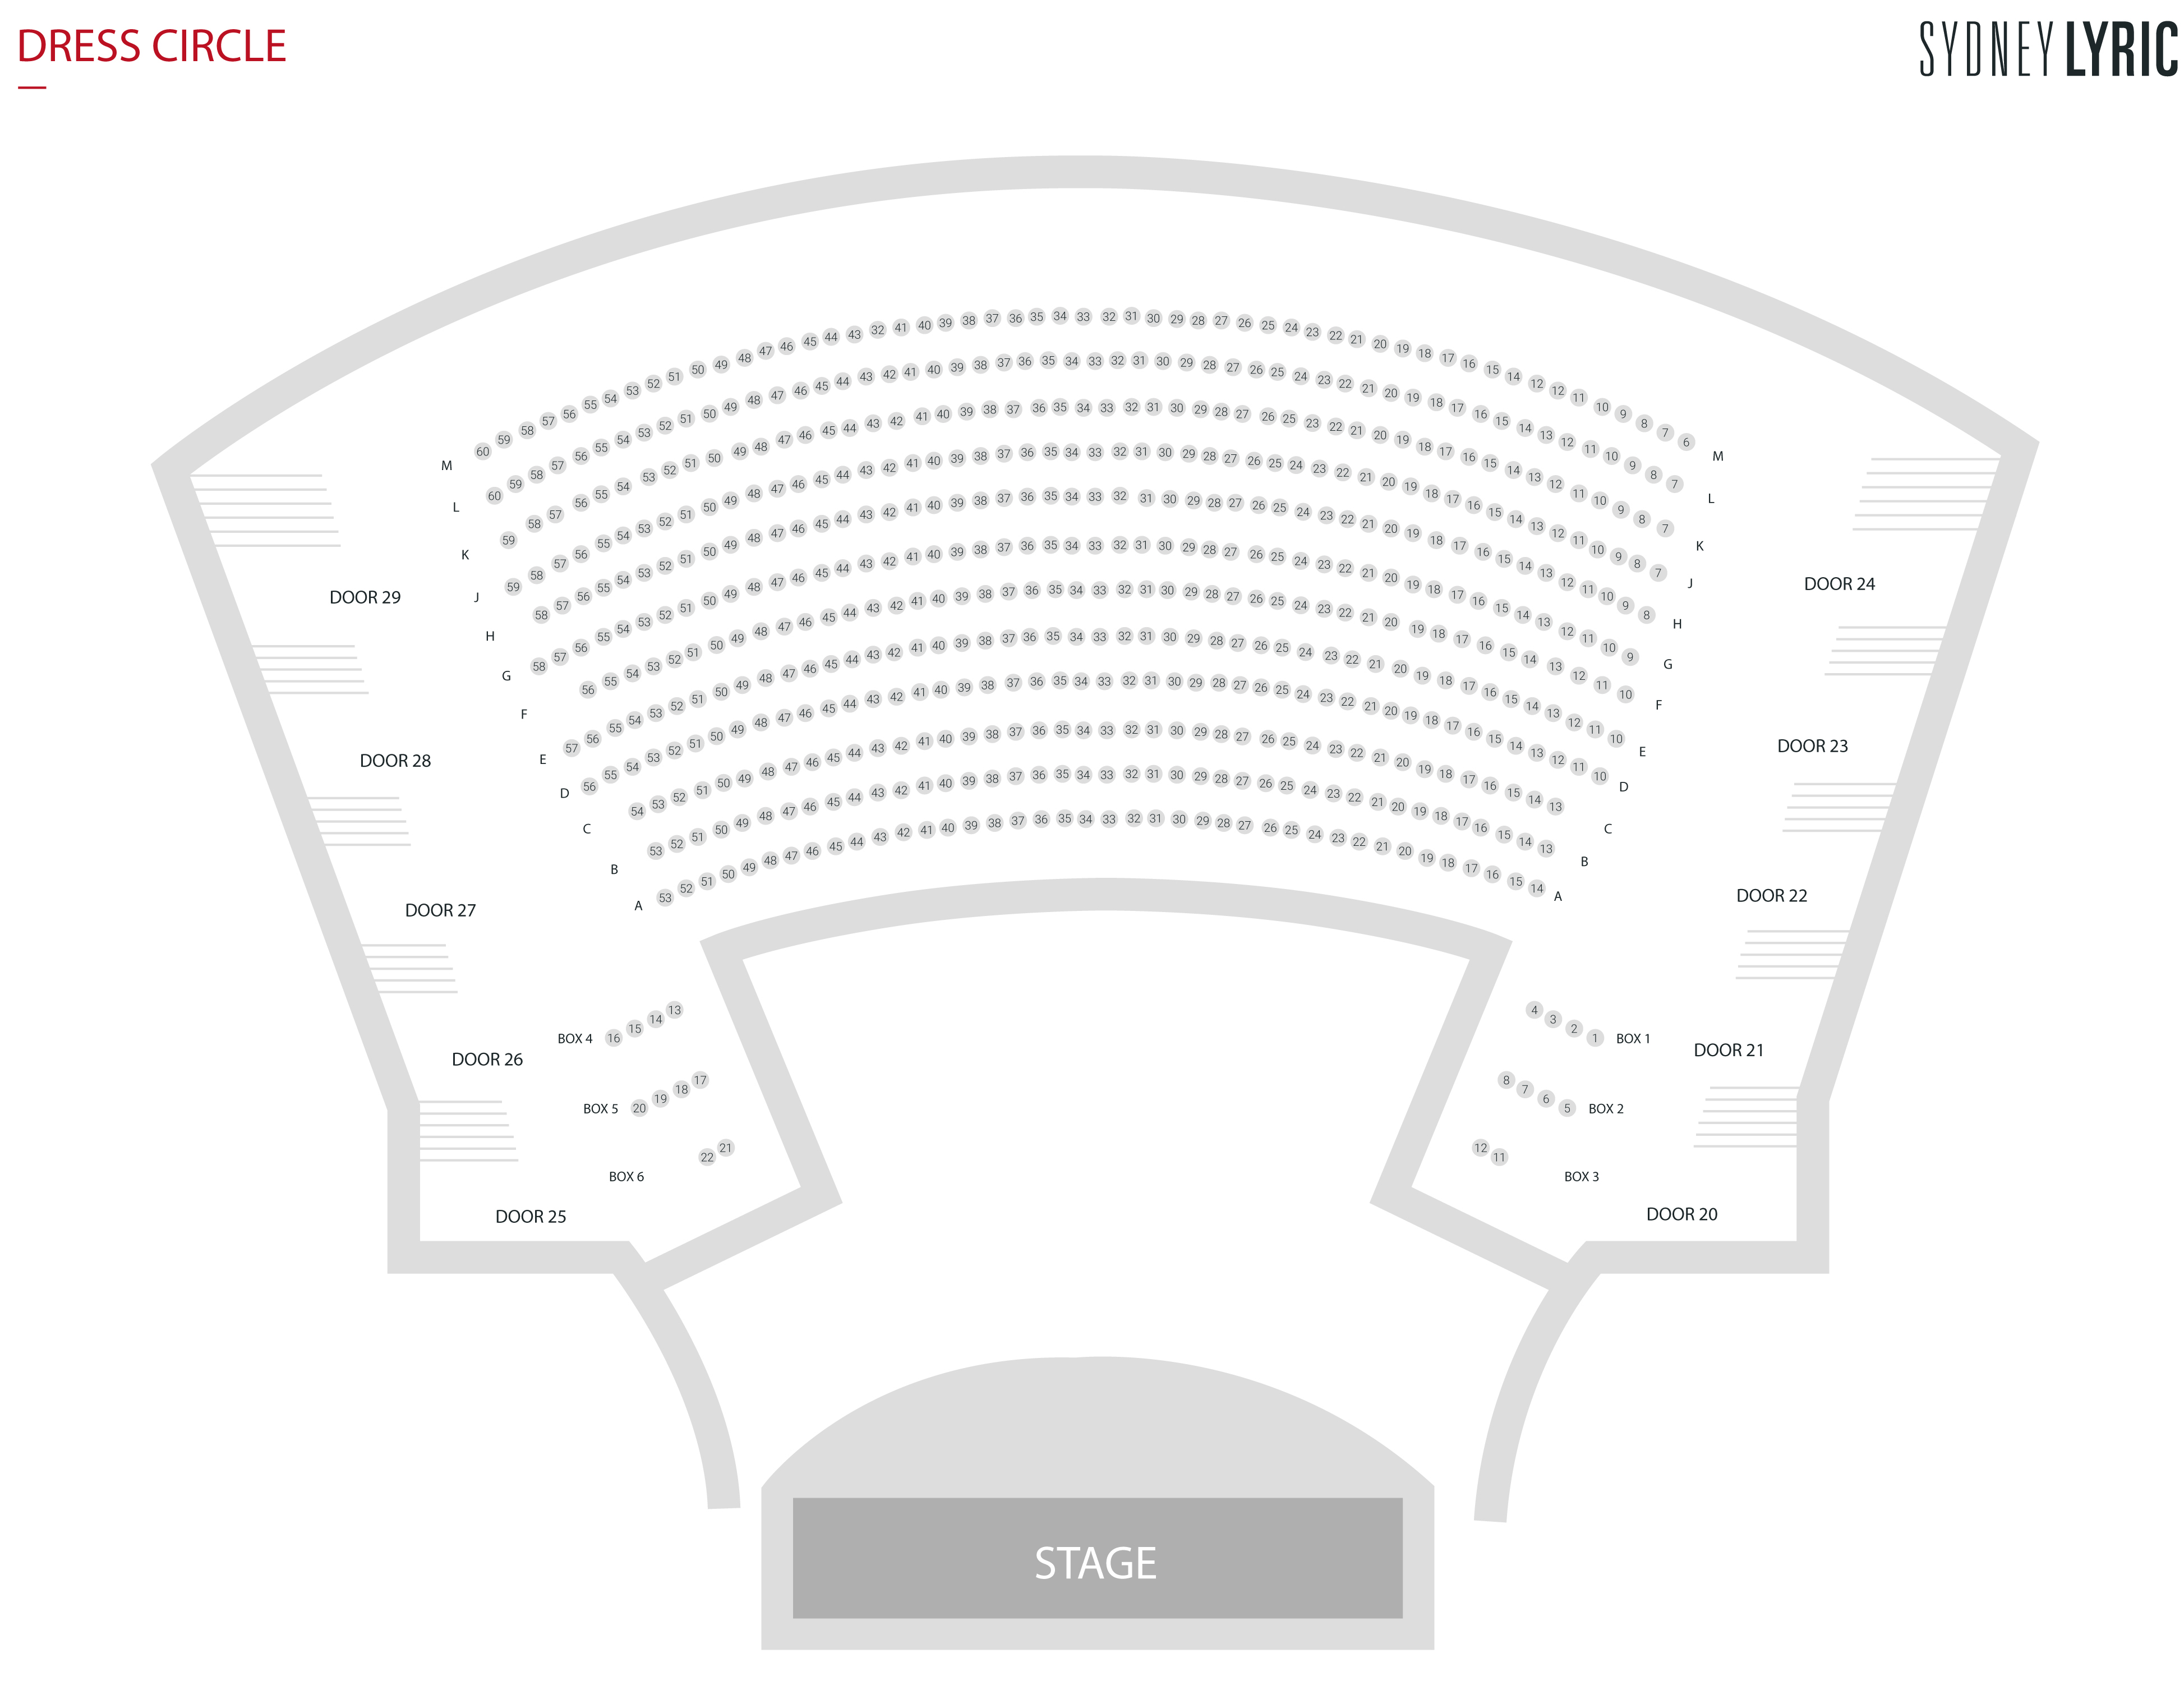 Prince of Wales Theatre Seating Plan, London | Boxoffice.co.uk